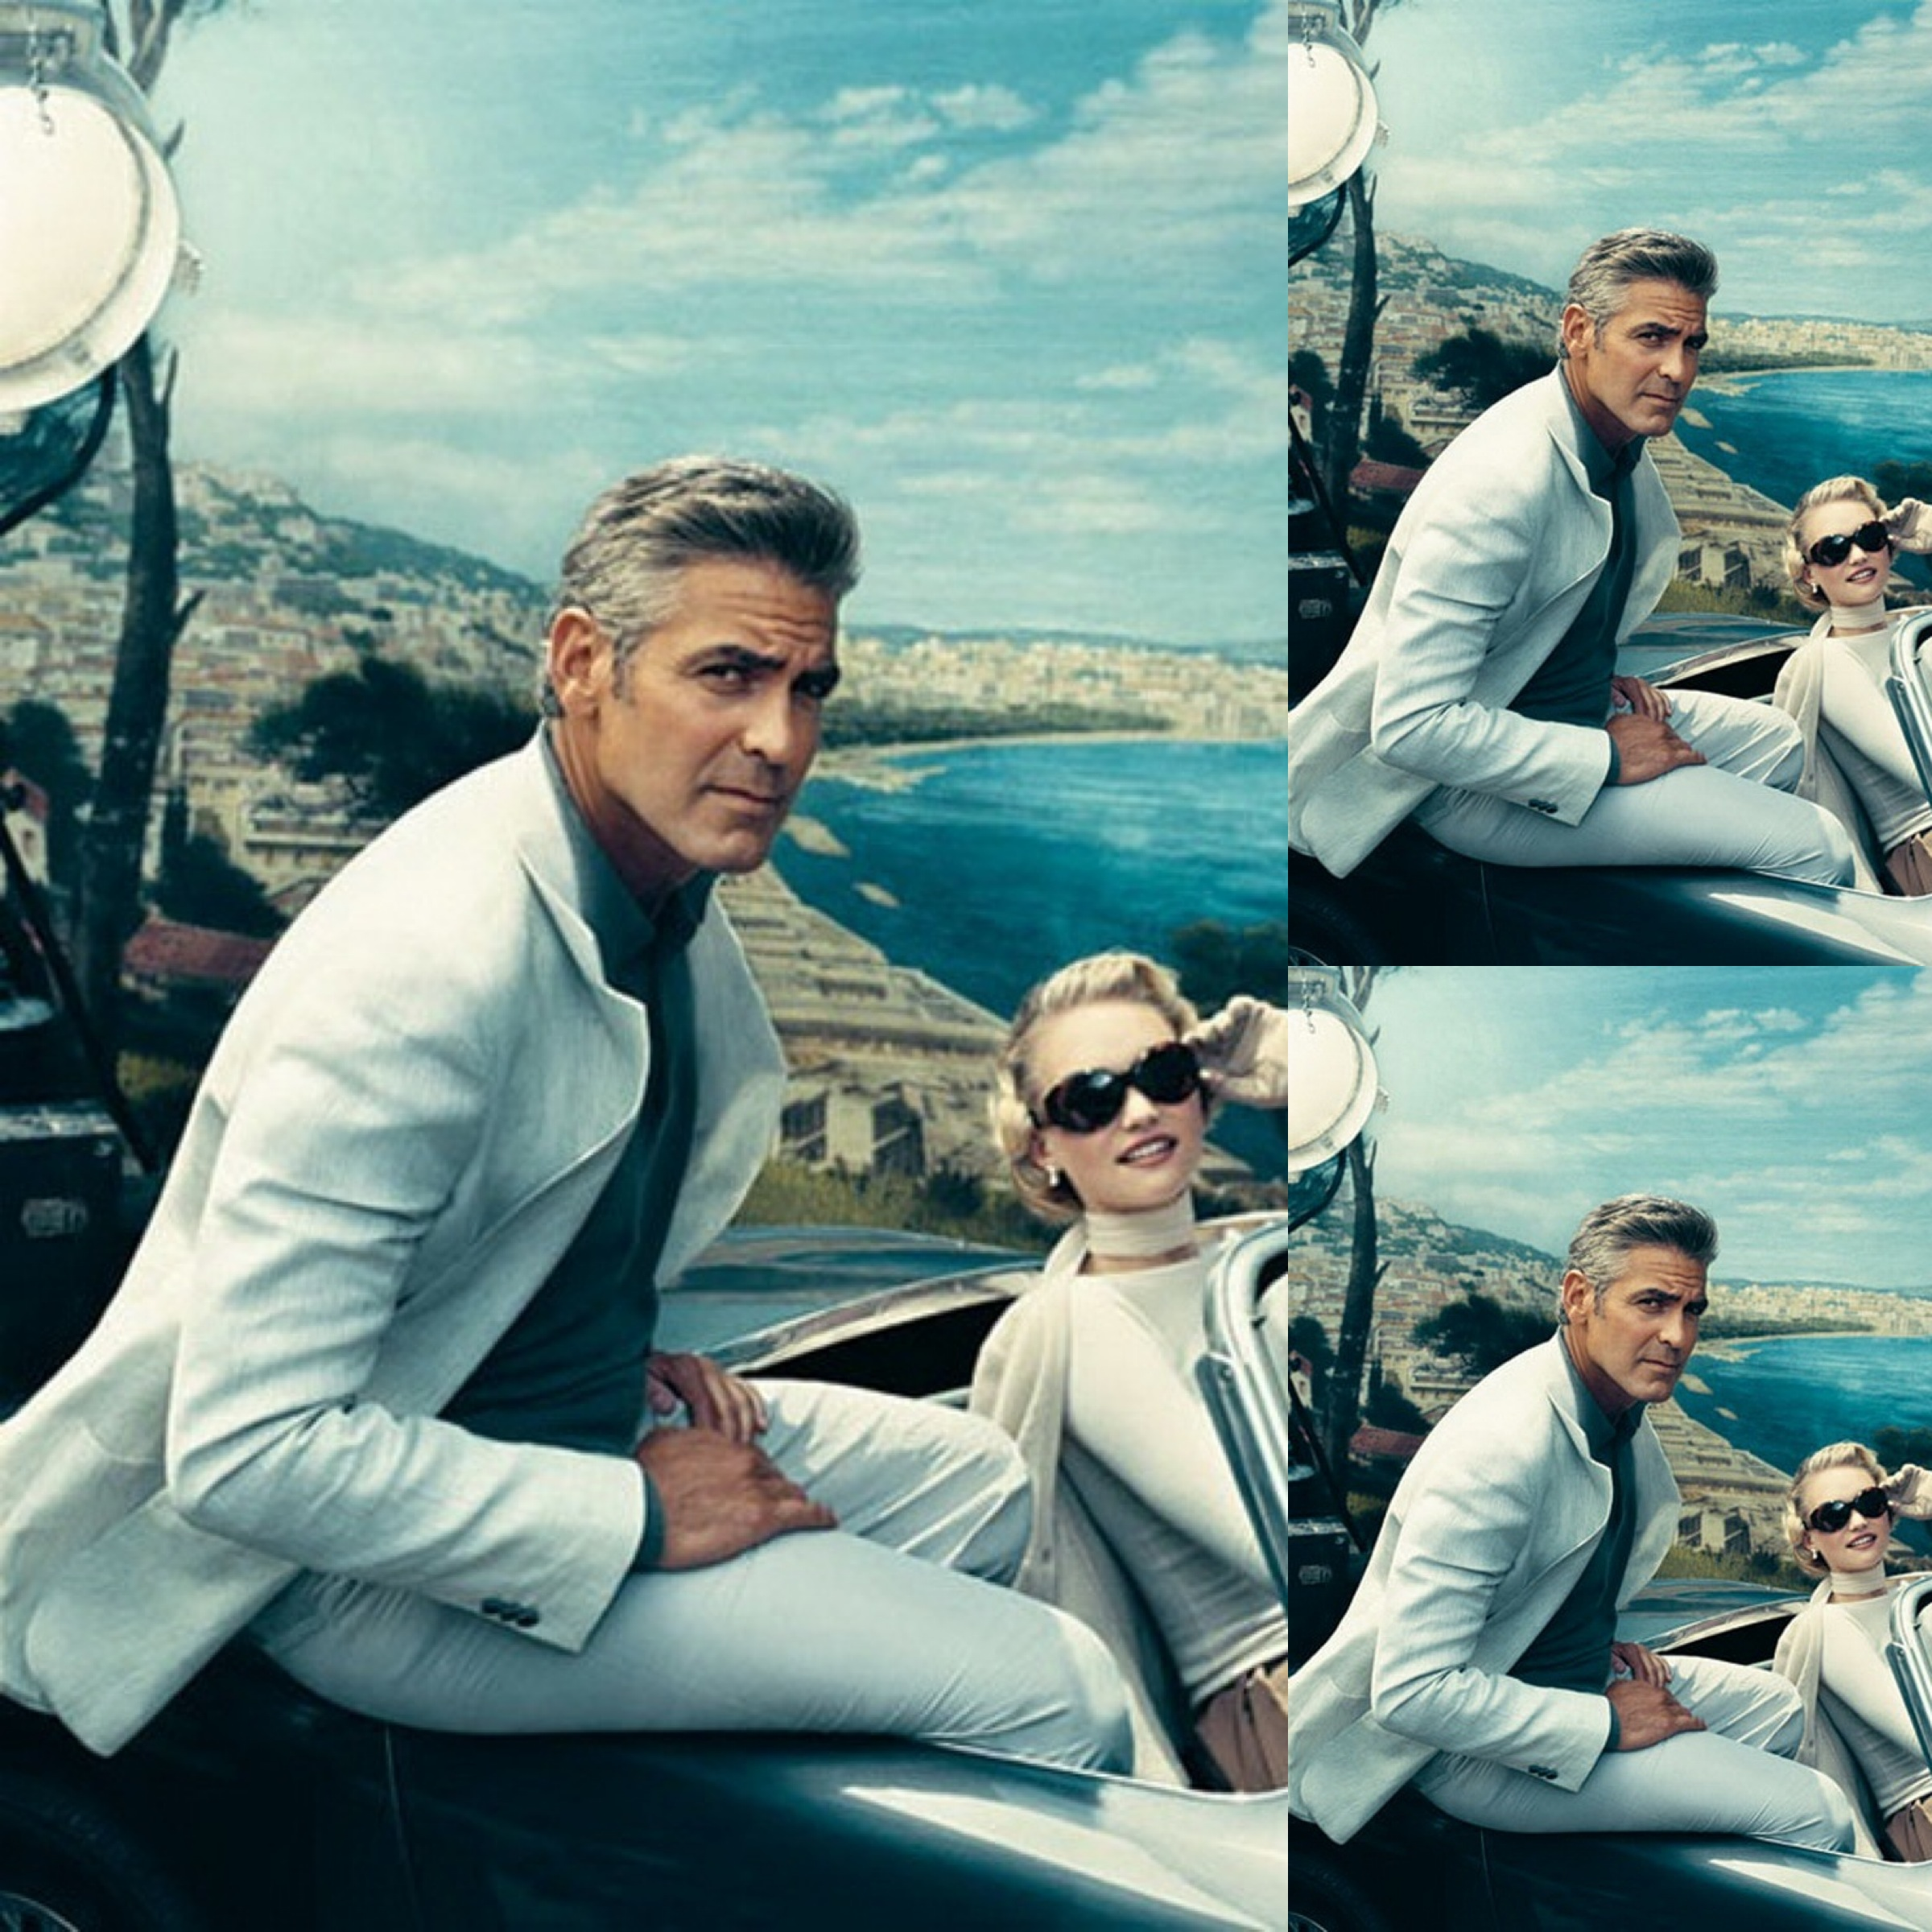 #1 (246 likes on The Man Has Style) :: George Clooney and Gemma Ward in a 1959 Austin Healey, in Outtakes || Vanity Fair :: shot by Norman Jean Roy